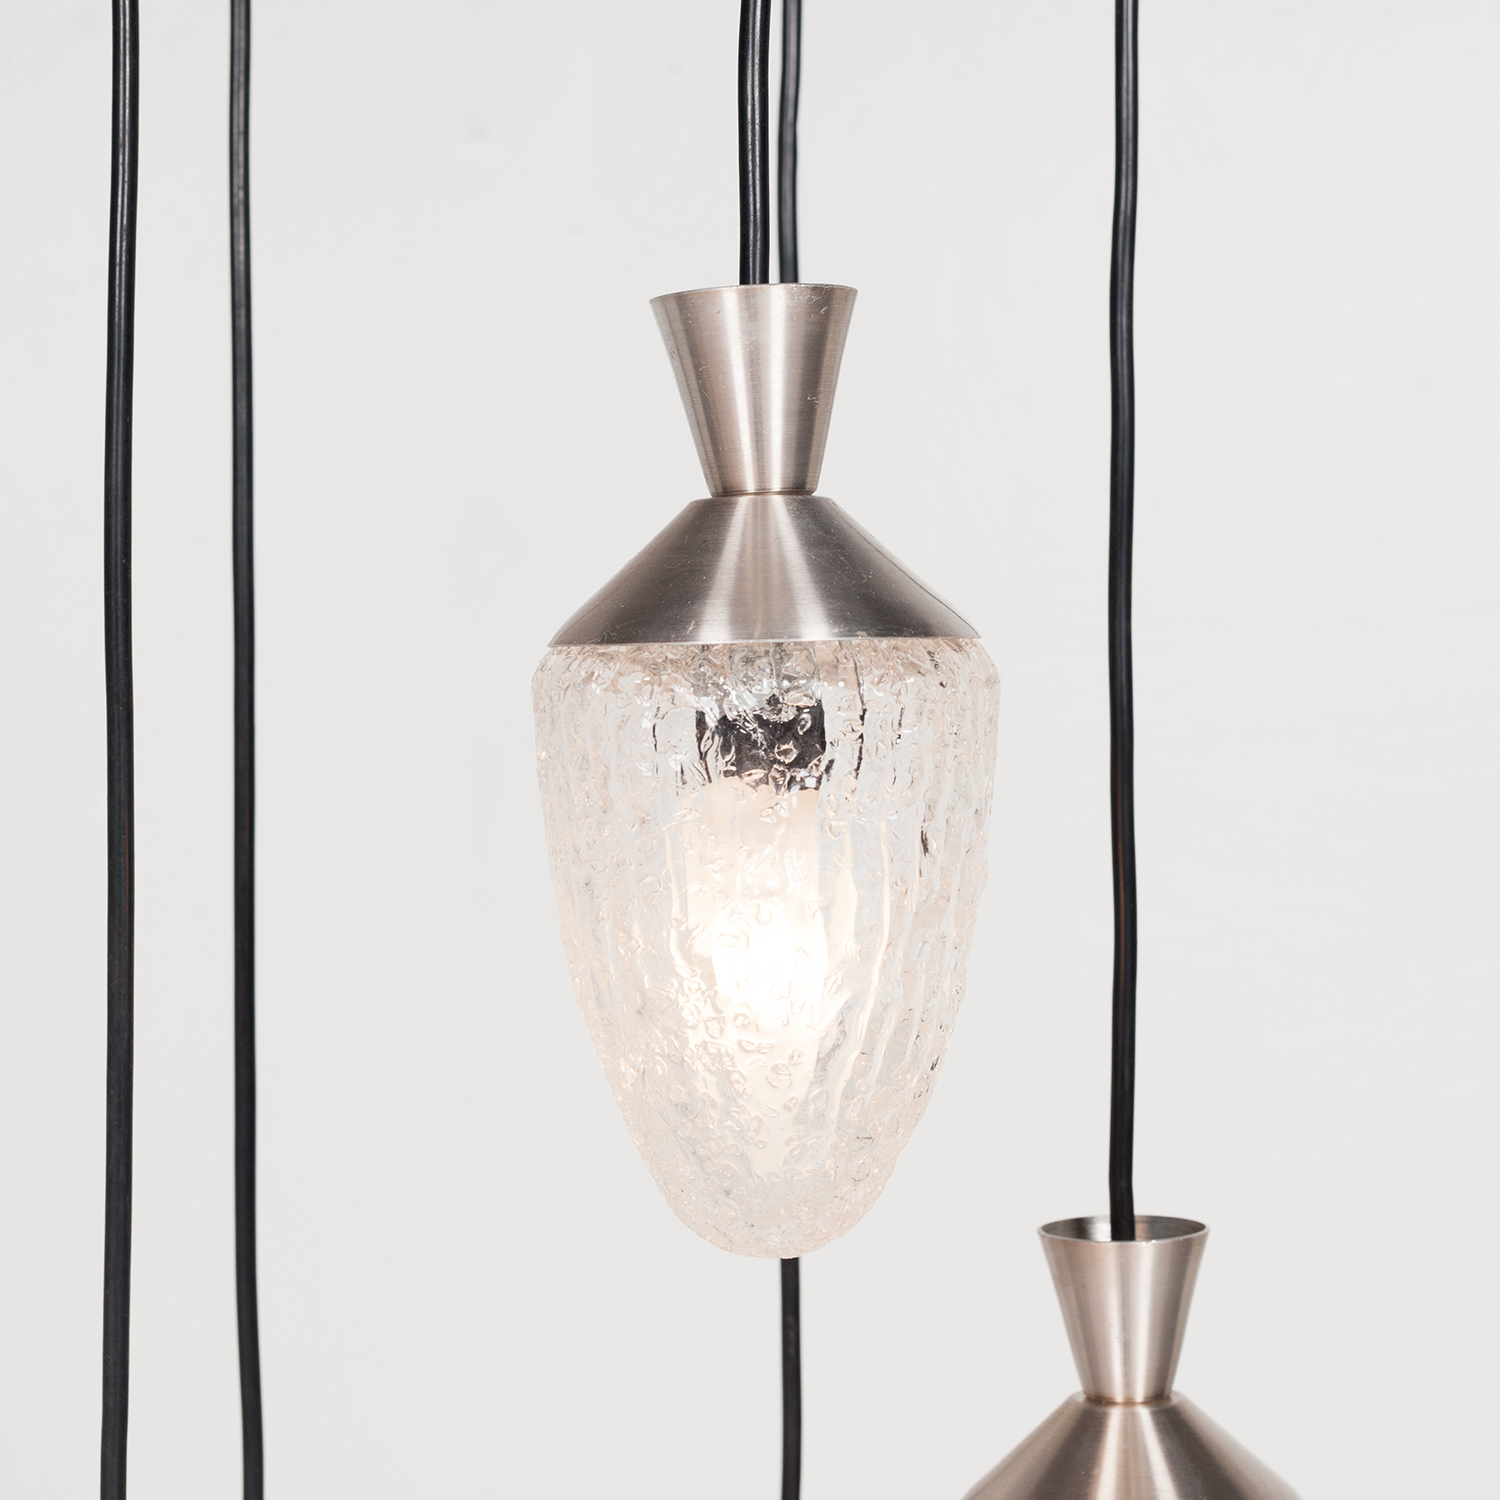 5 Piece Pendant With Frosted Glass Bulbs, 1960s, The Netherlands 50